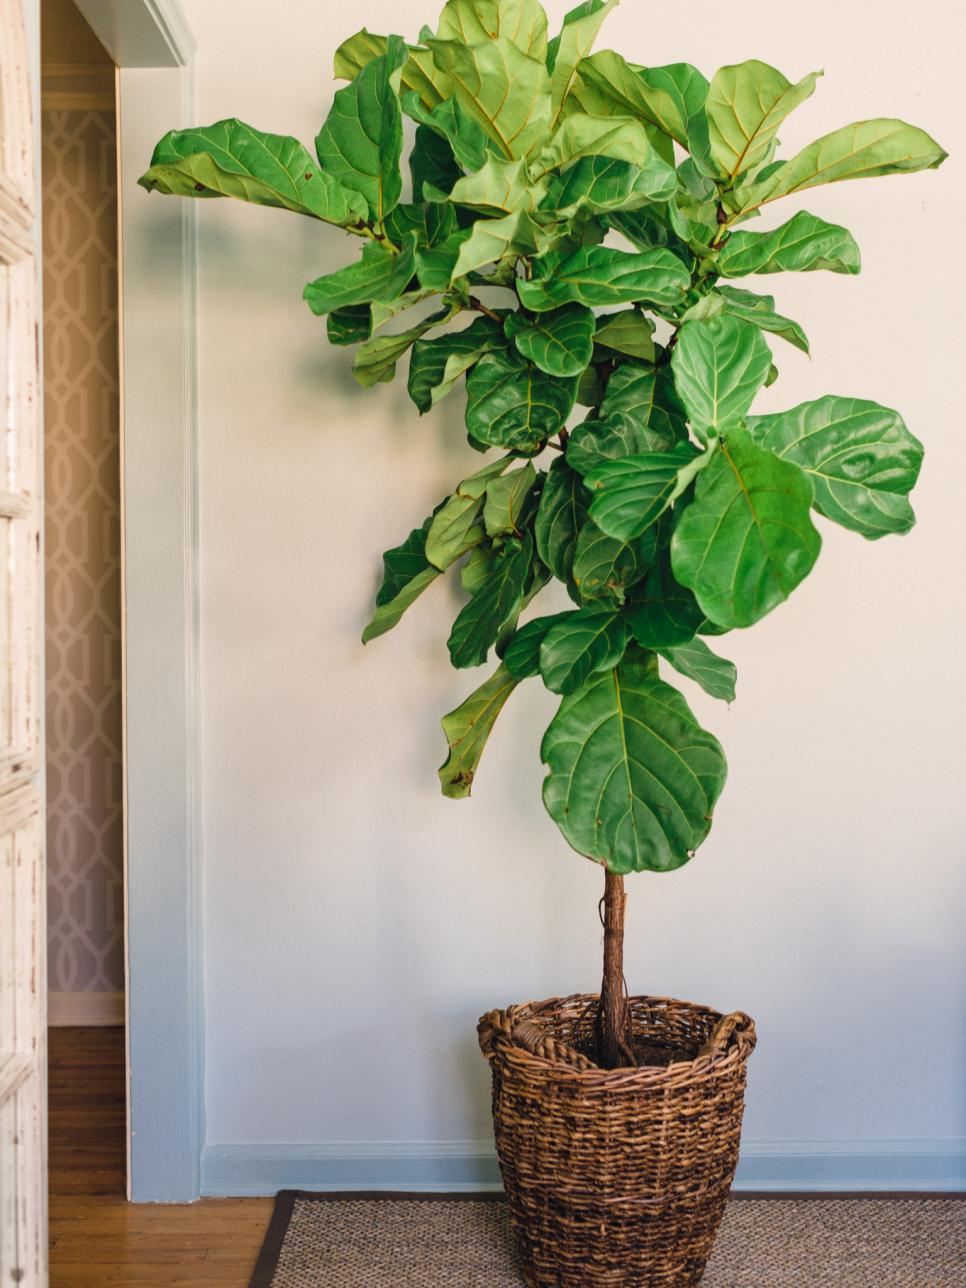 Houseplants guide hgtv Images of indoor plants